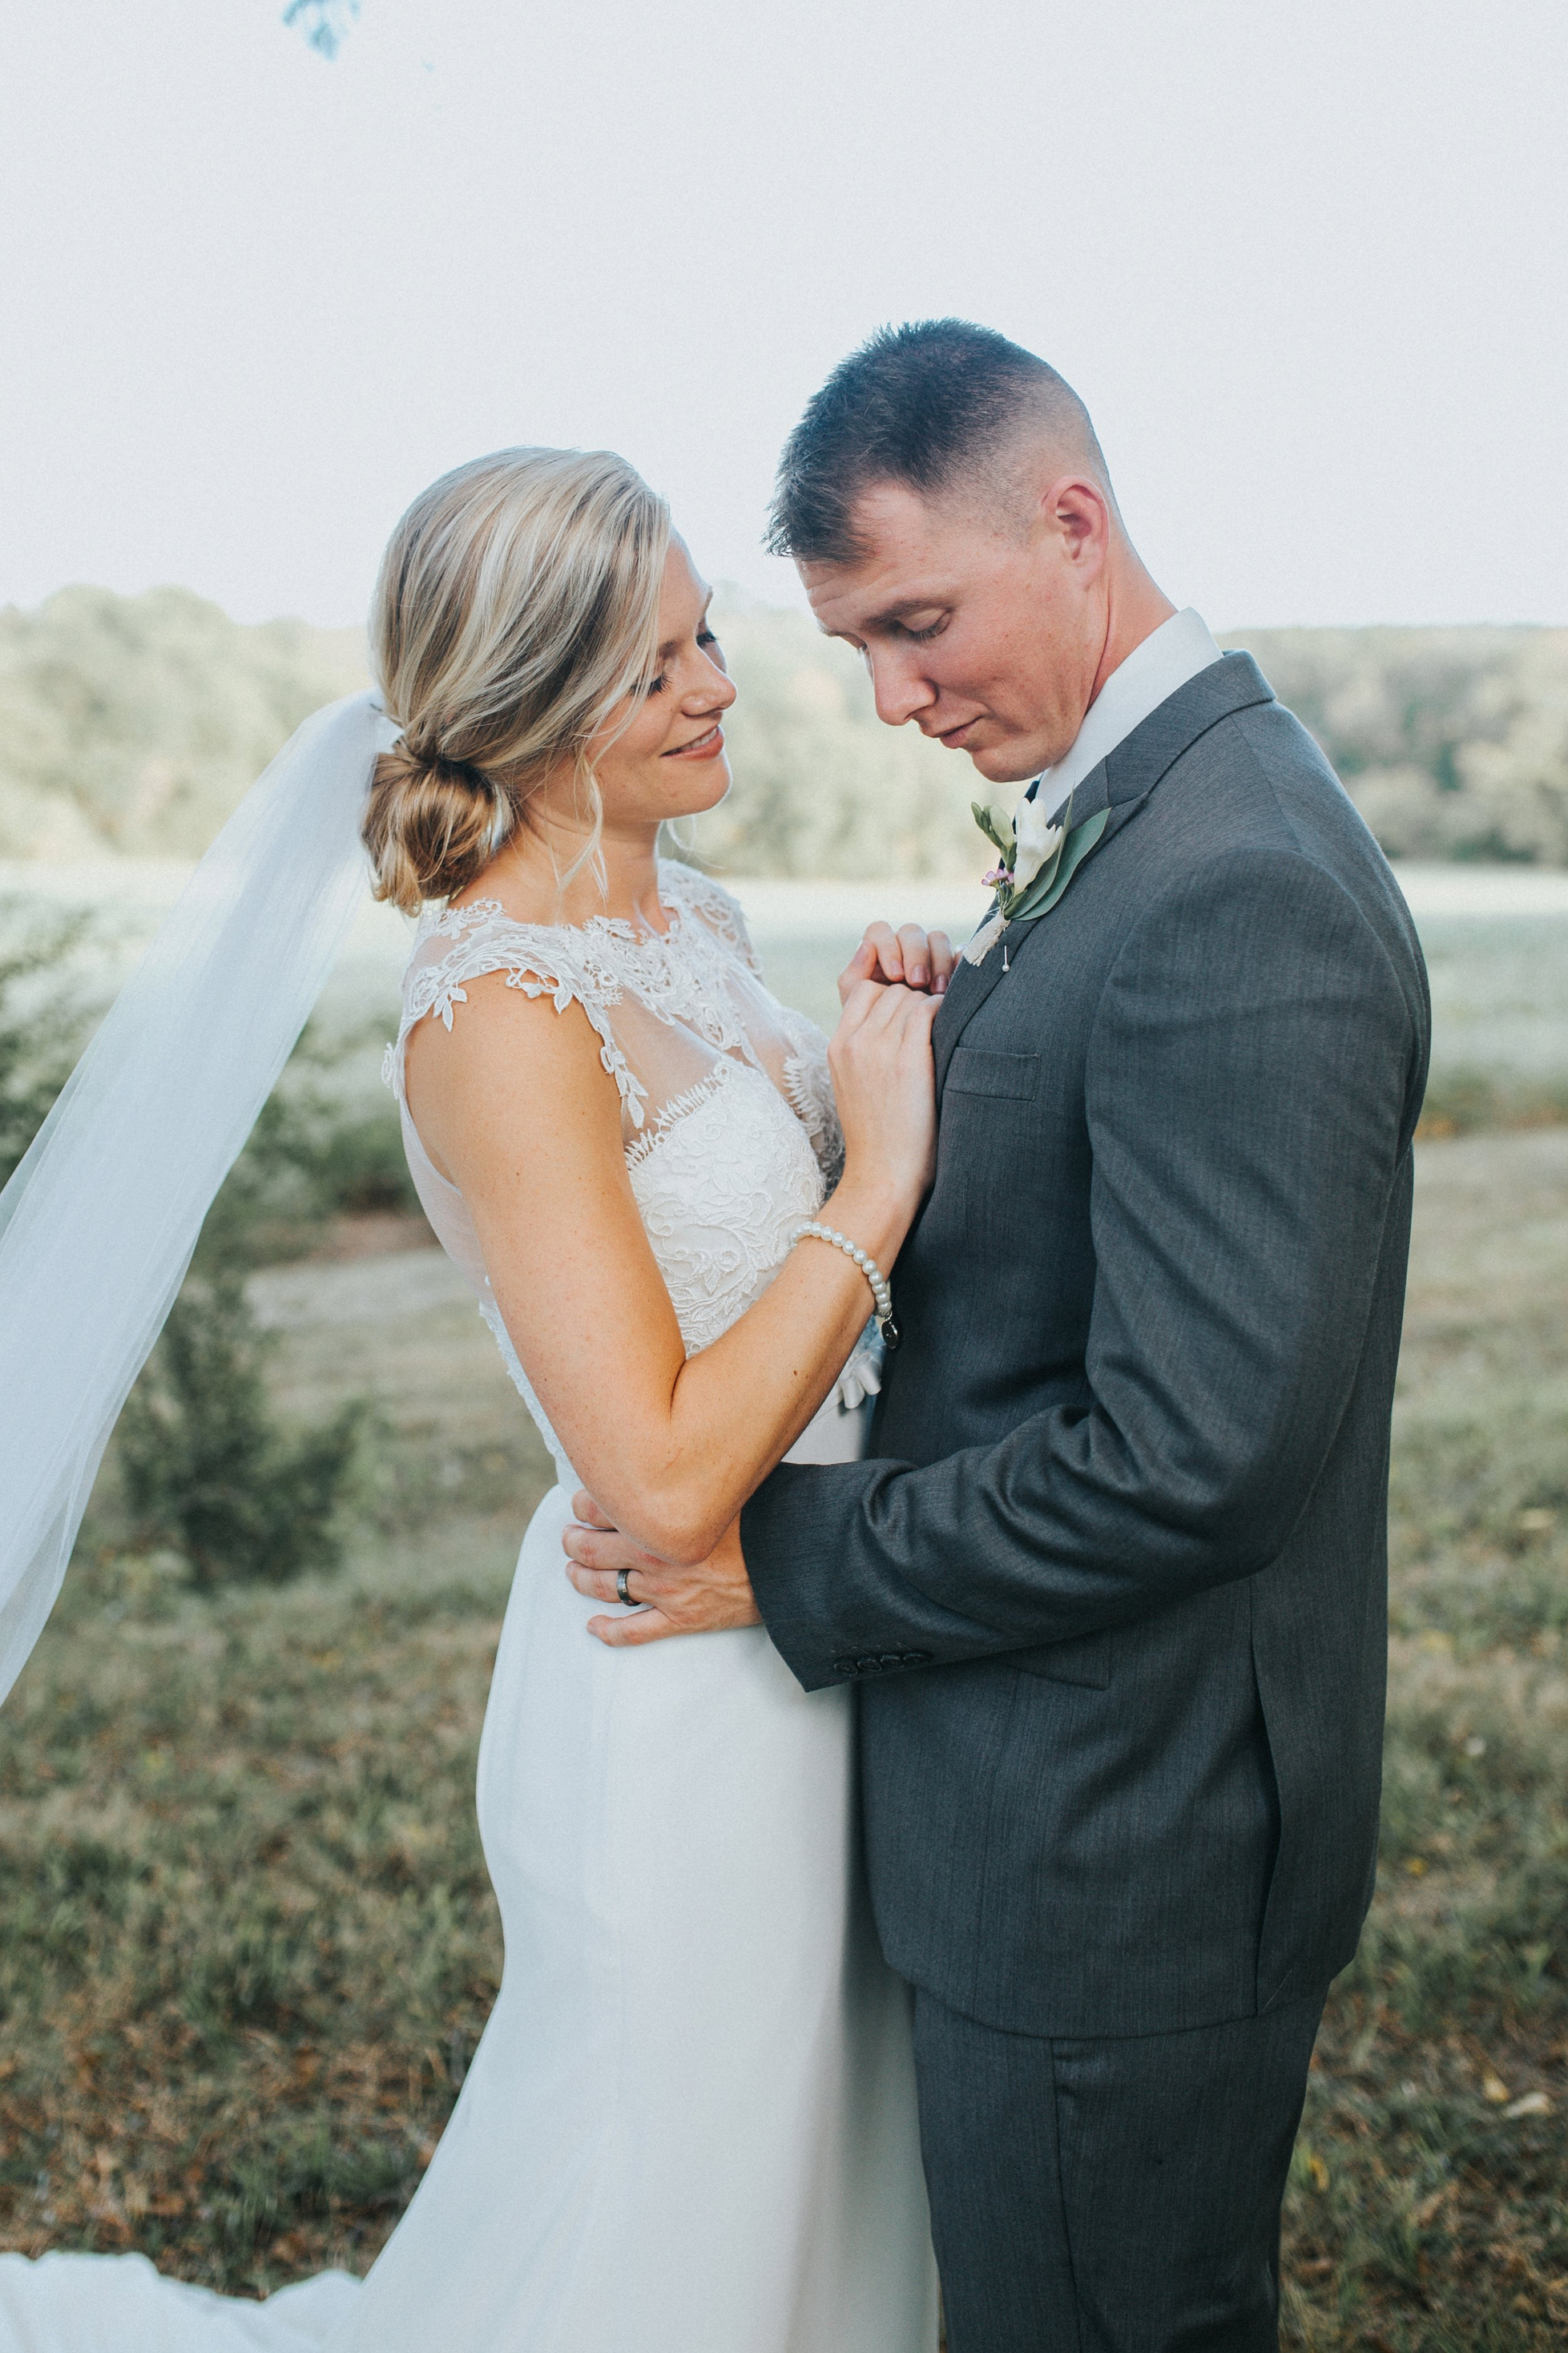 Virginia wedding photographer, Charlottesville wedding photographer, the hunt at Selma wedding, amelia virginia wedding photographer_0212.jpg